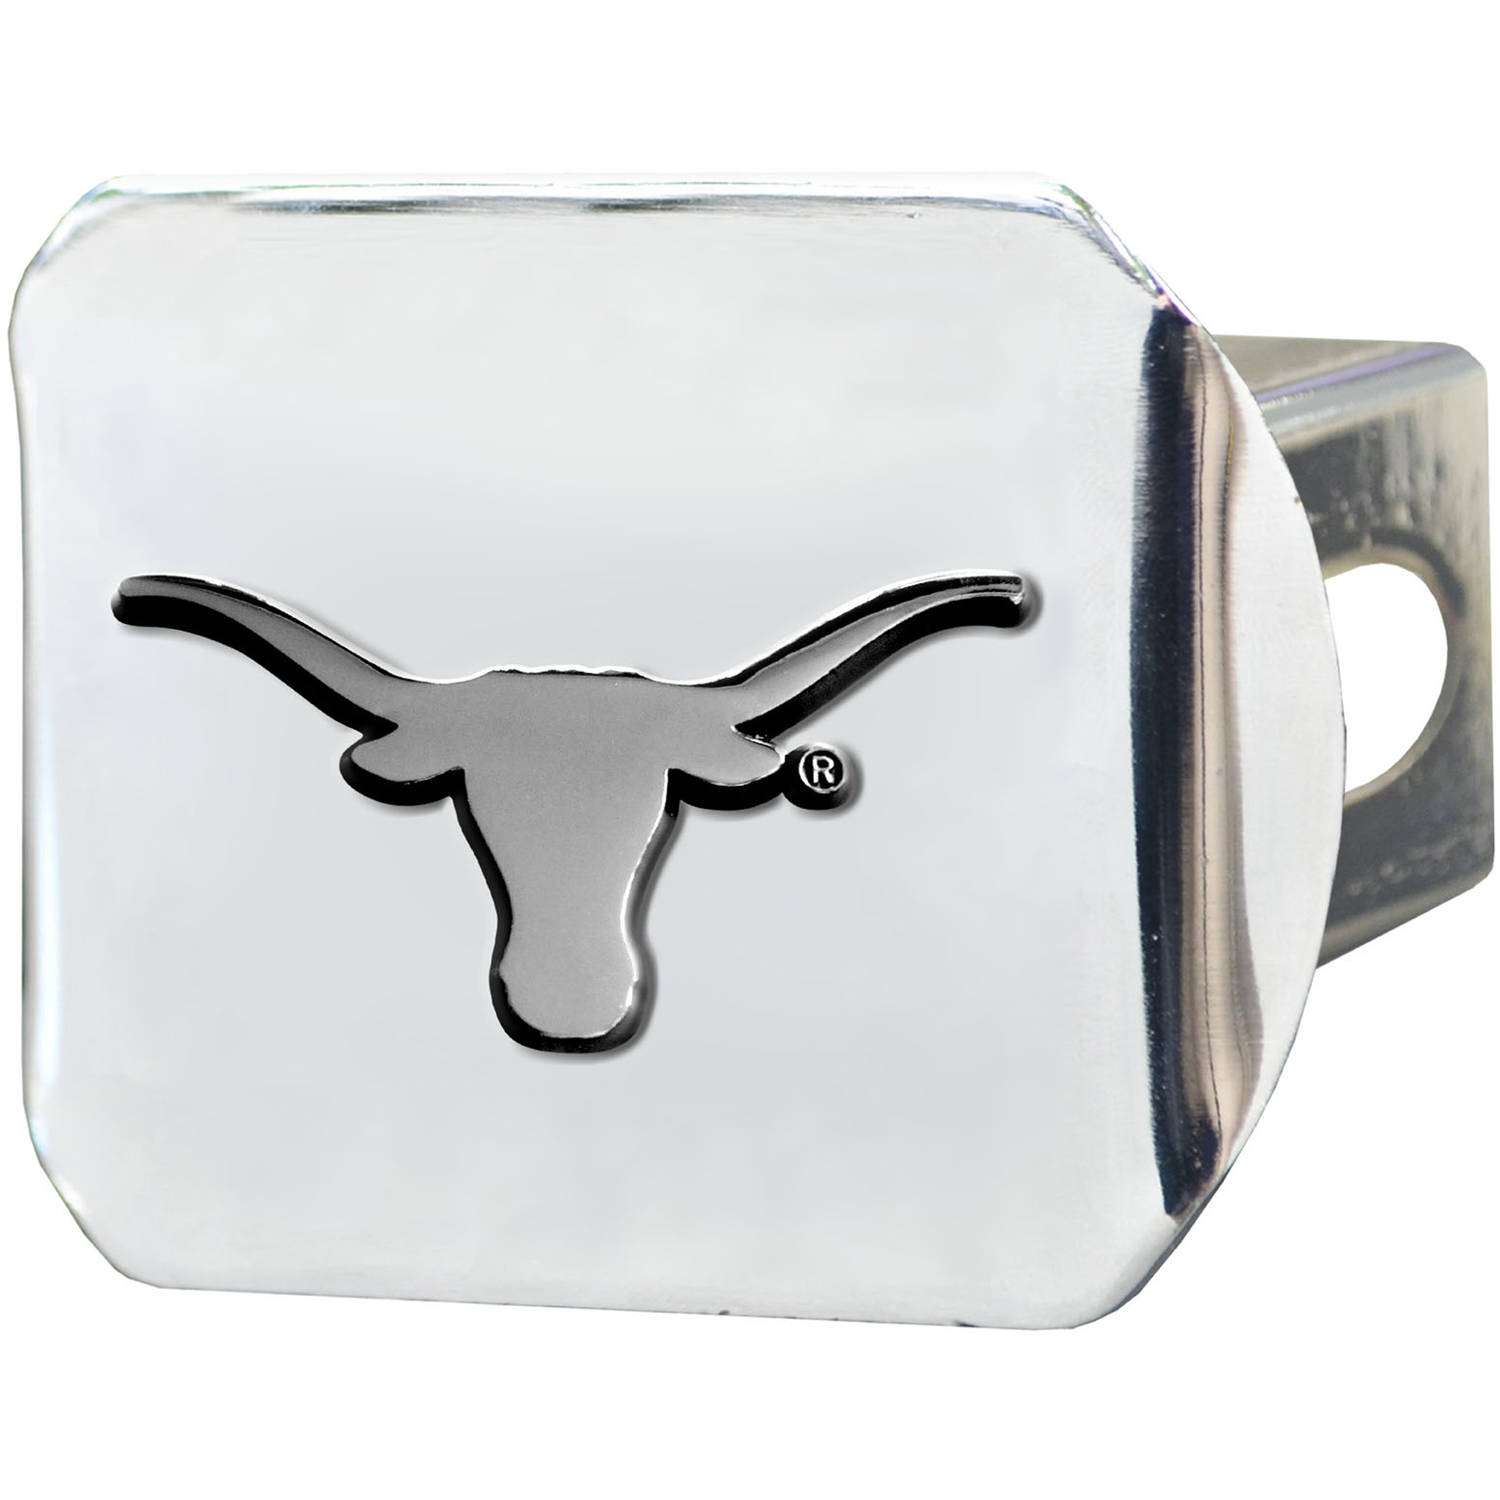 University of Texas Hitch Cover